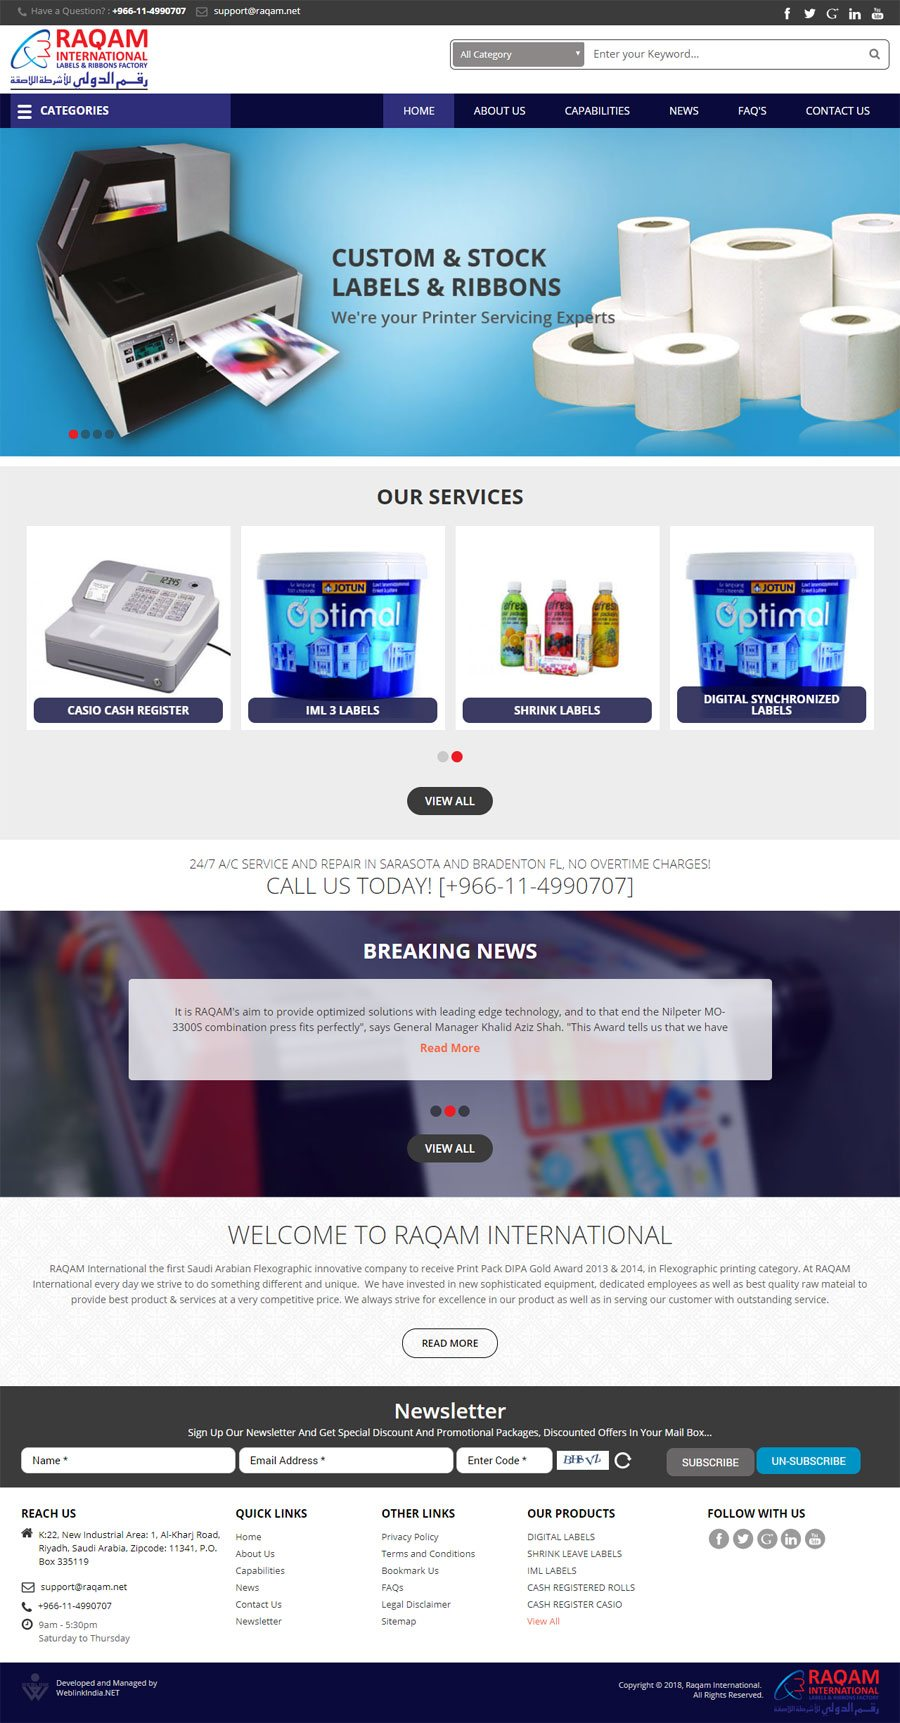 Raqam International Saudi Arabia Web Design